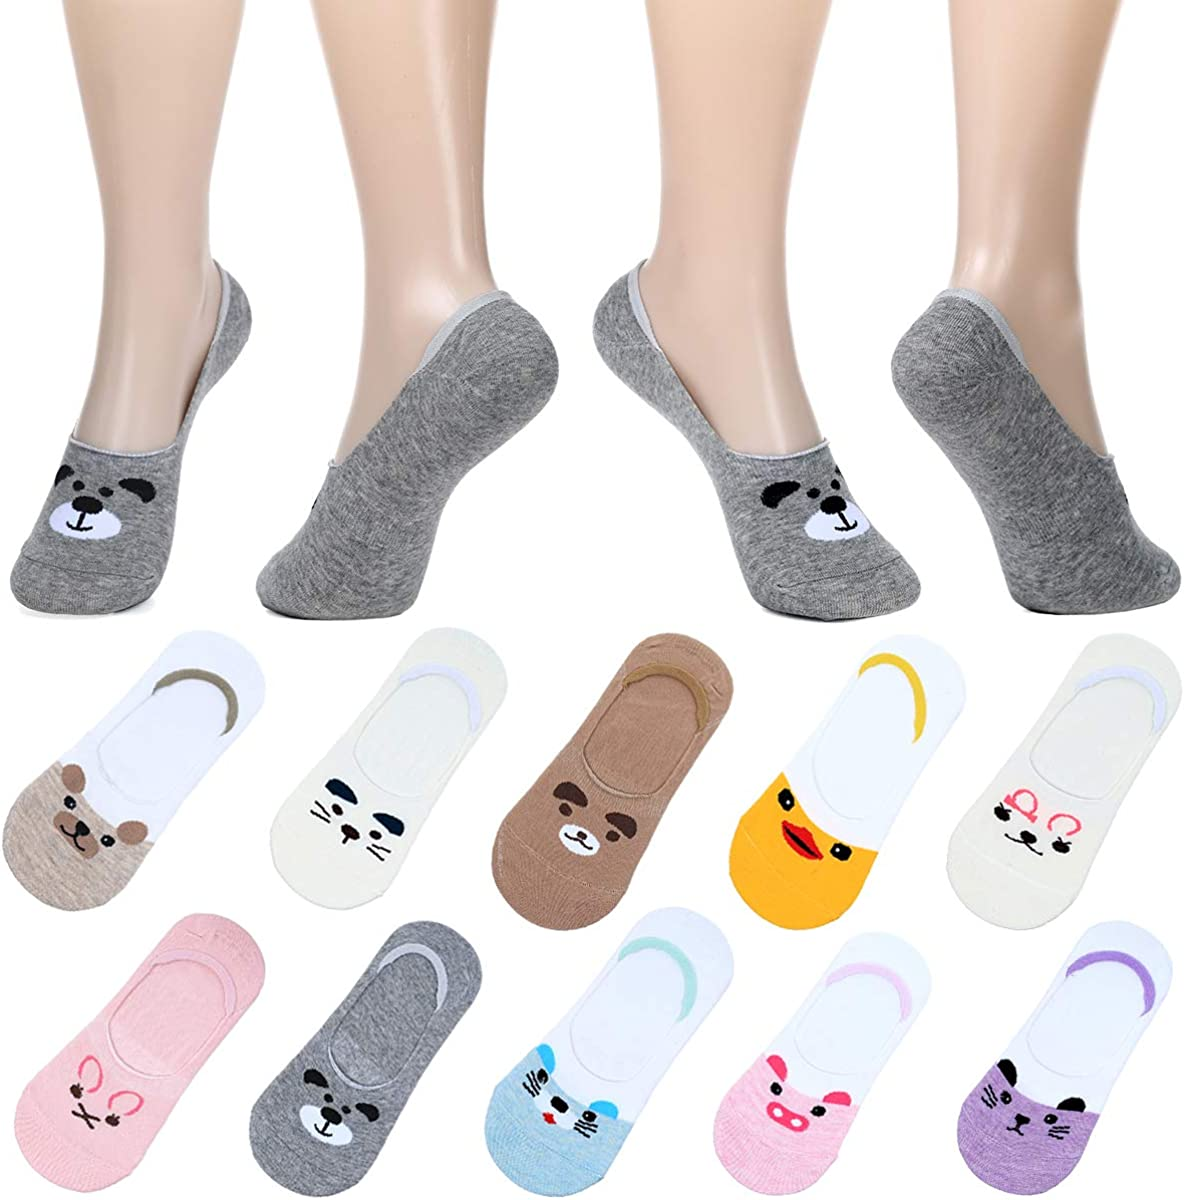 10-pack Women Cute No Show Liner Socks for Flats Slip on Shoes Invisible Hidden Low Profile for Boat Shoe